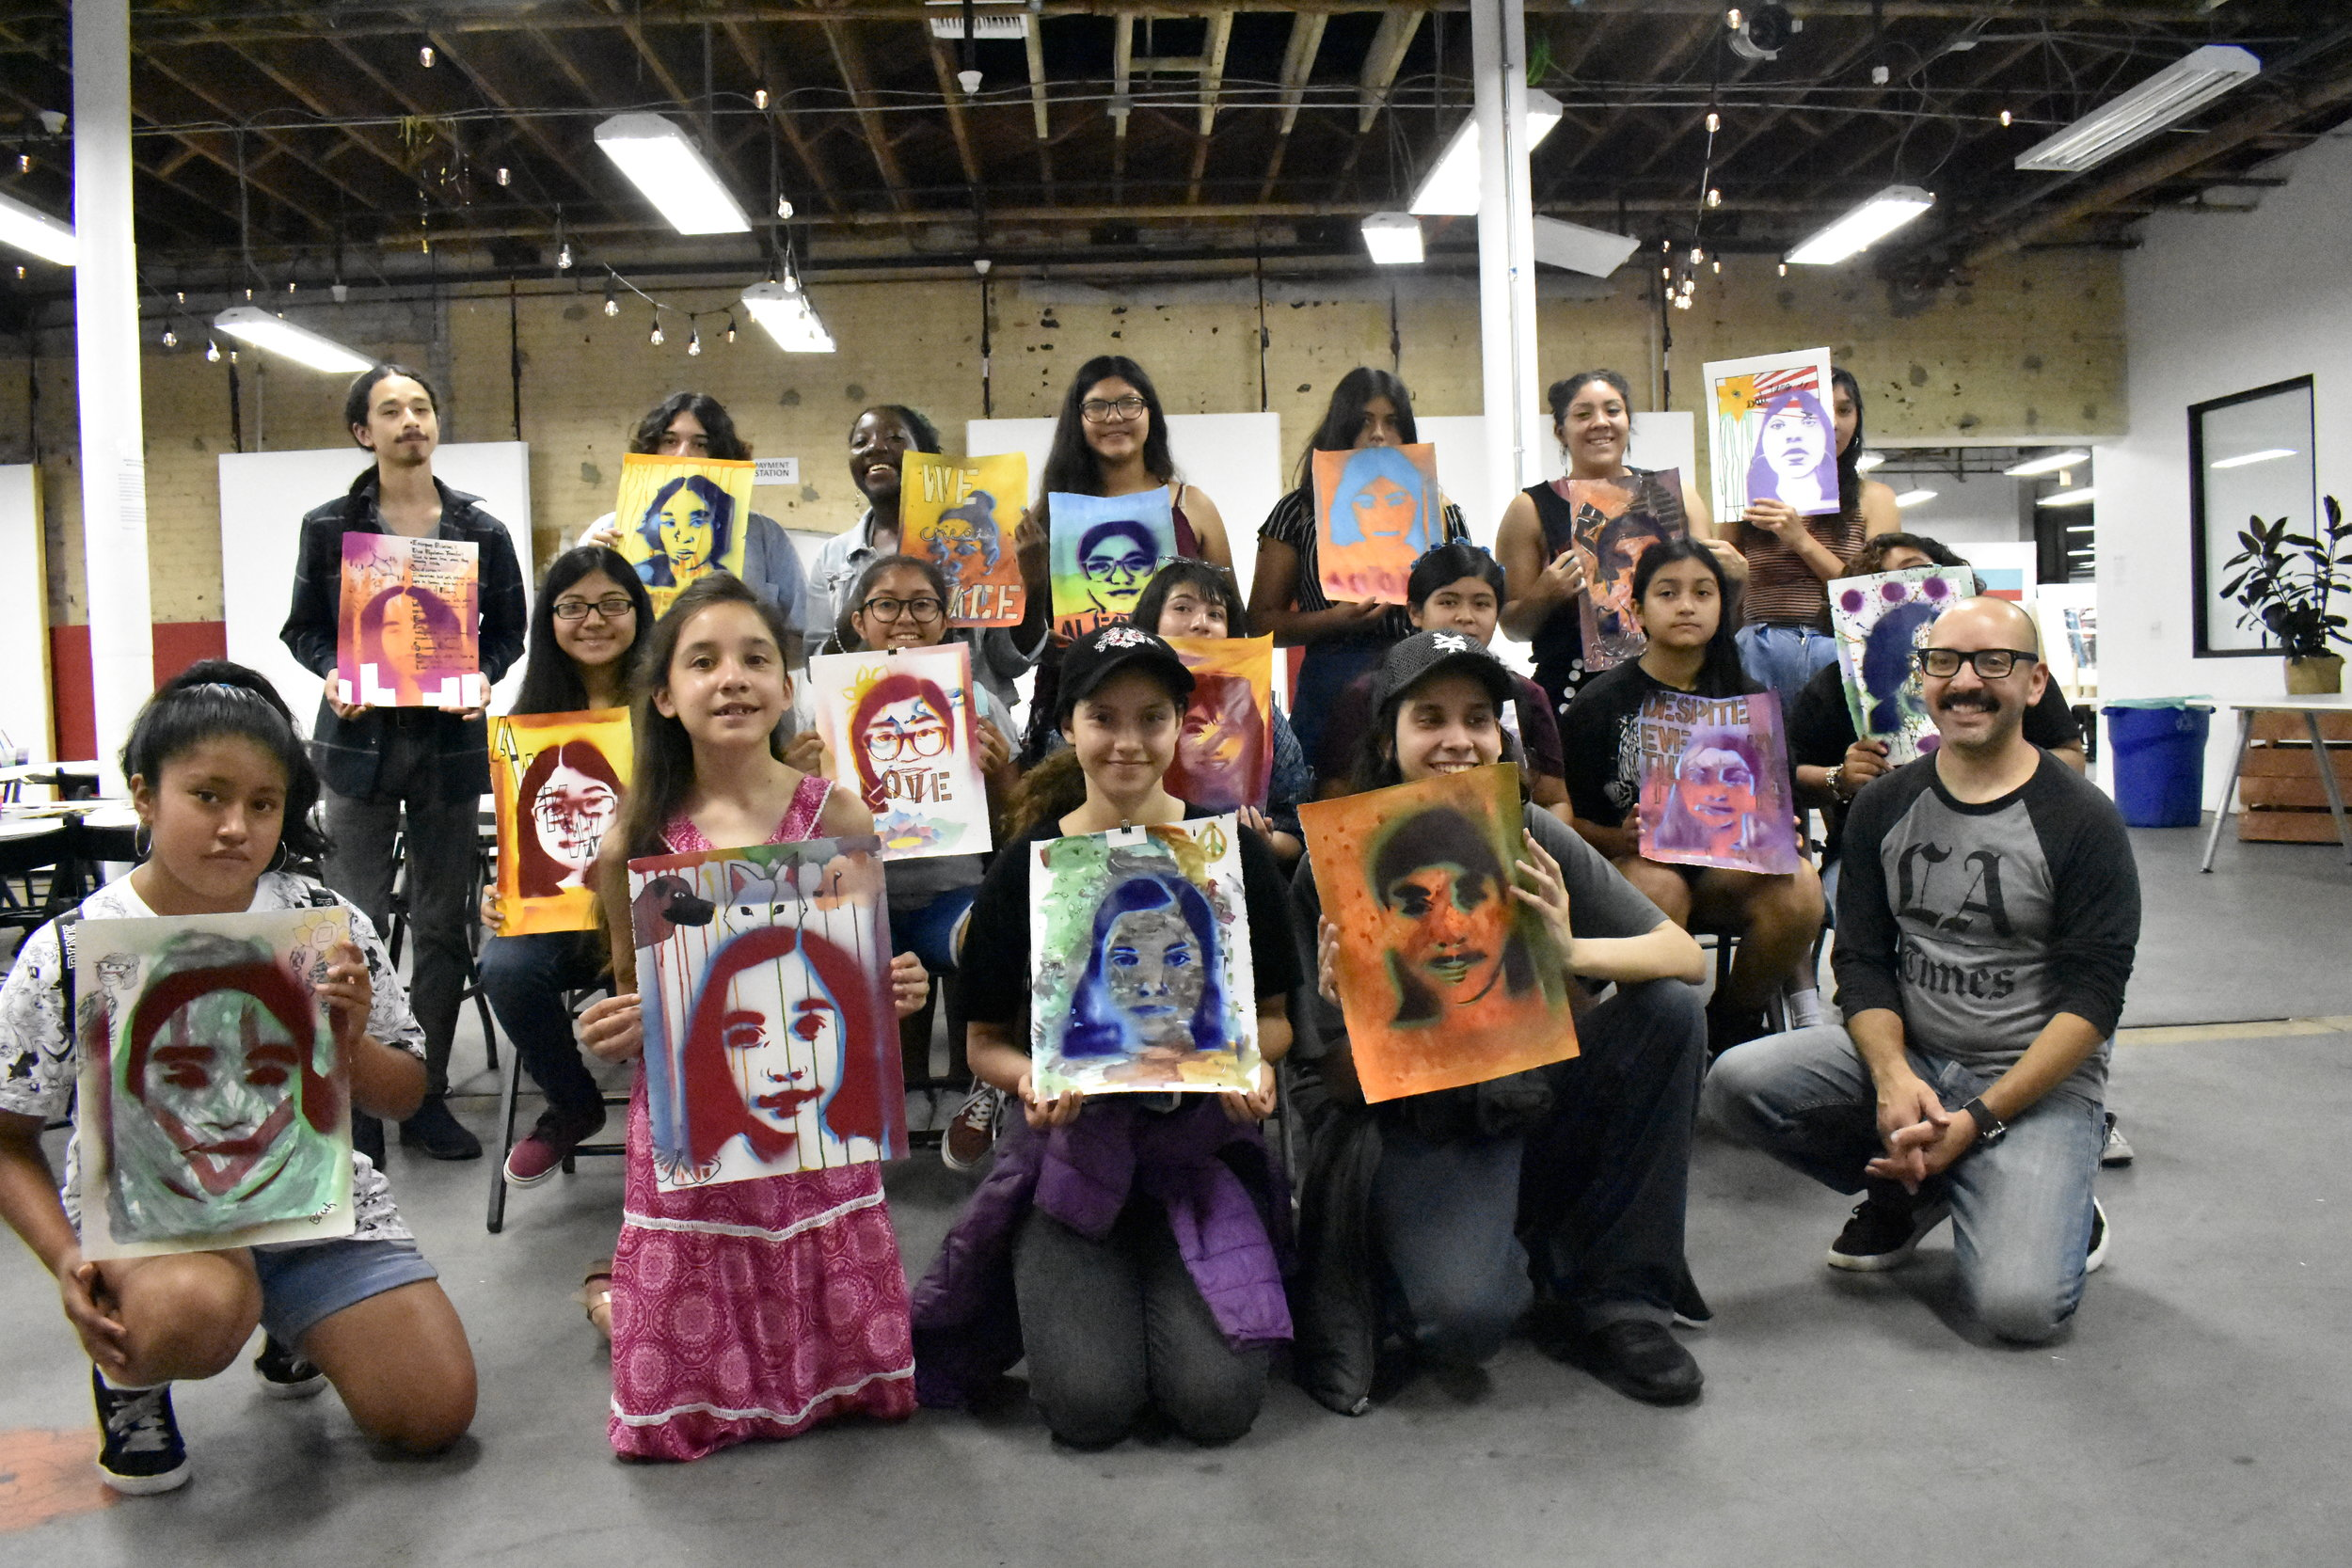 Luis Genaro-Garcia and his class during the first week of S.O.Y Artista proudly showcasing their self-portraits.